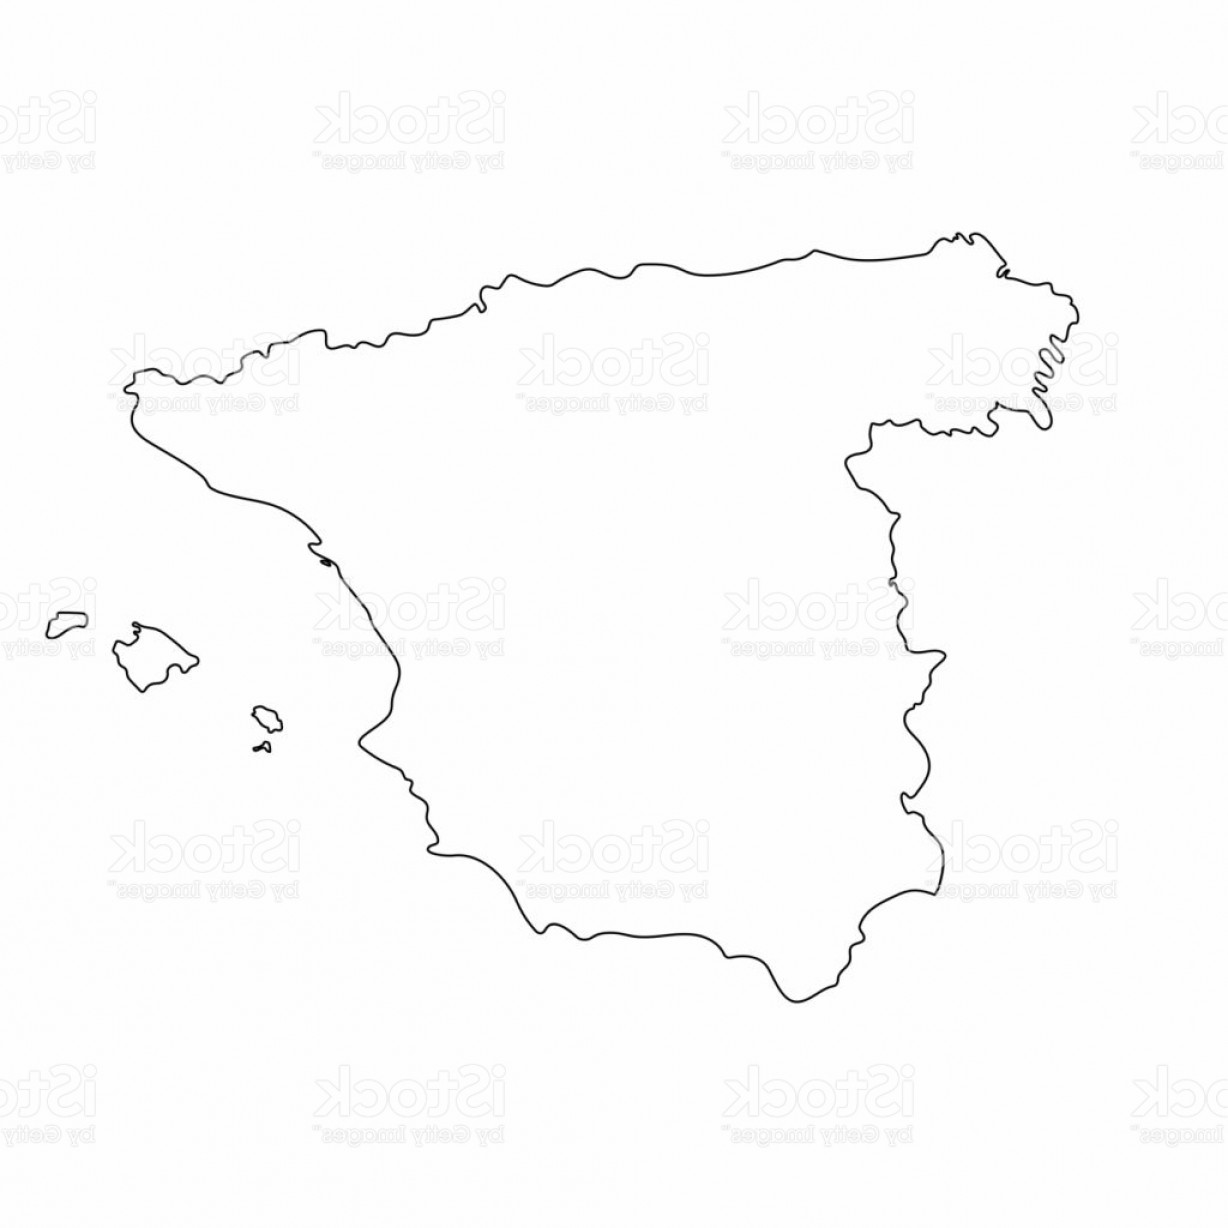 Spain Outline Vector: Spain Map Outline Graphic Freehand Drawing On White Background Vector Illustration Gm